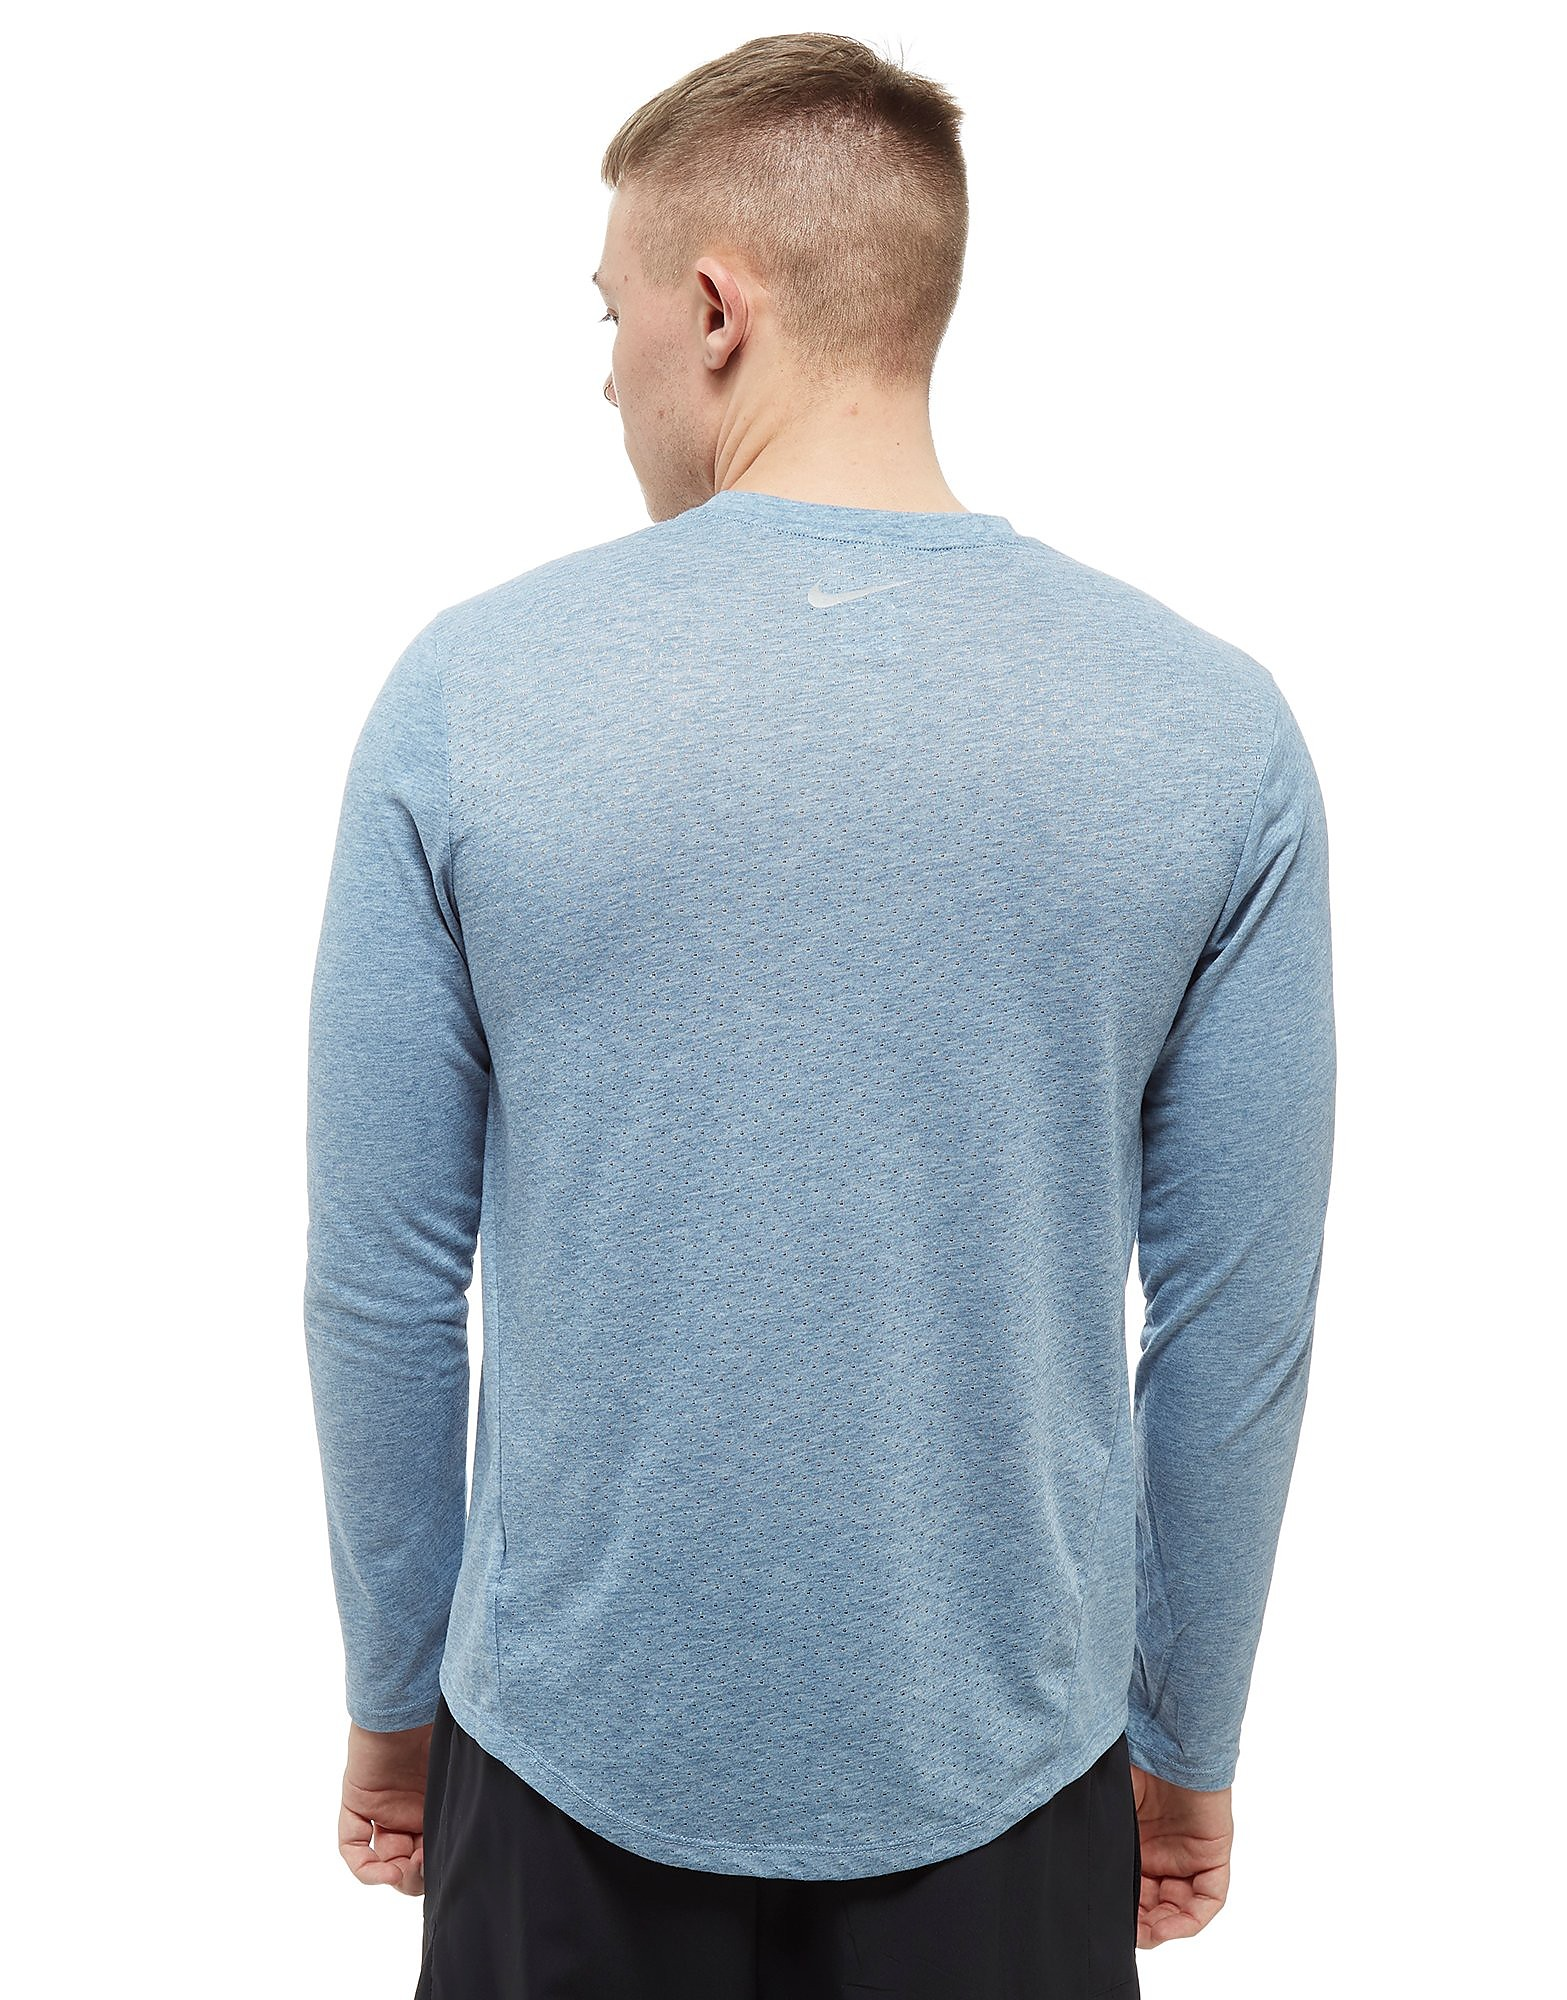 Nike Breathe Tailwind Long Sleeve Top